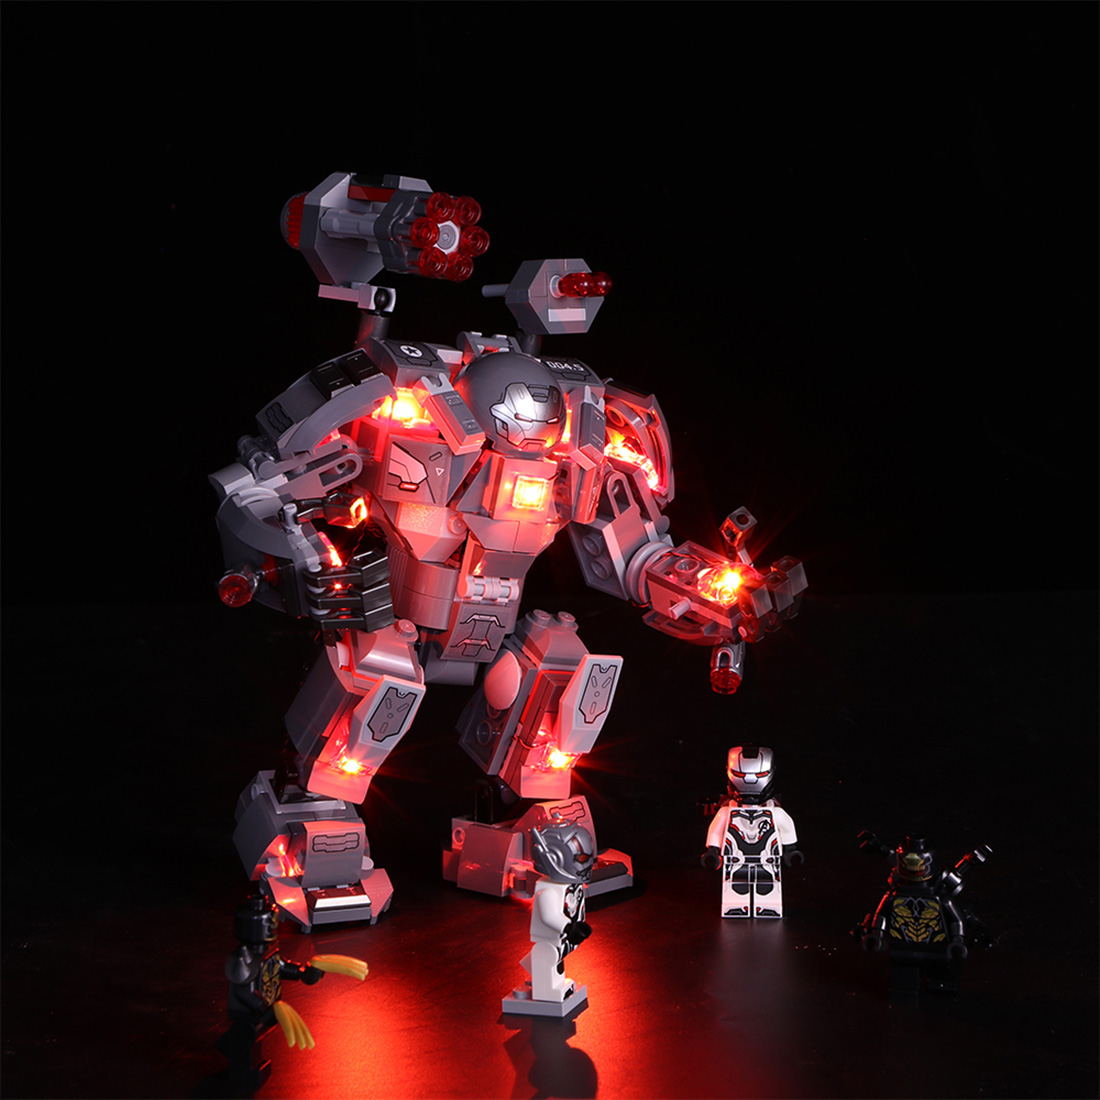 Vonado USB LED Light Building Block Accessory Modified For War Machine 76124 Model Building Accessories (LED Included Only)Vonado USB LED Light Building Block Accessory Modified For War Machine 76124 Model Building Accessories (LED Included Only)